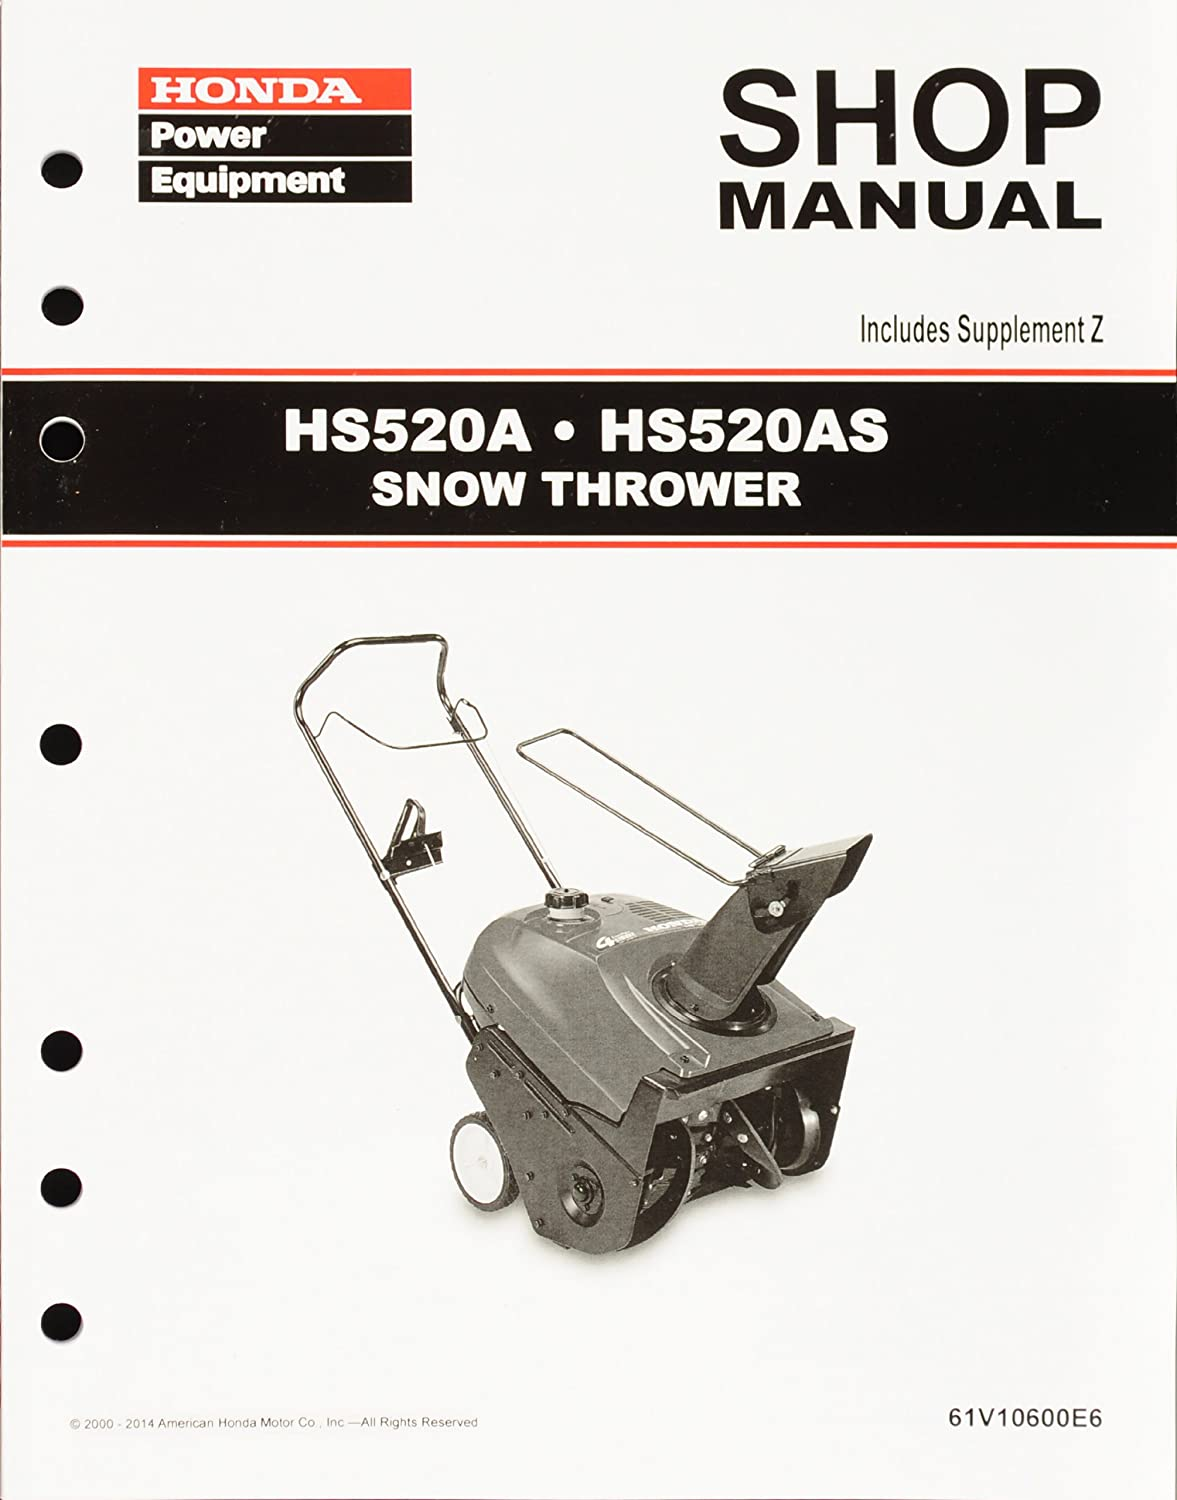 Amazon.com : Honda HS520 Snow Blow Throw Service Repair Shop Manual :  Garden & Outdoor